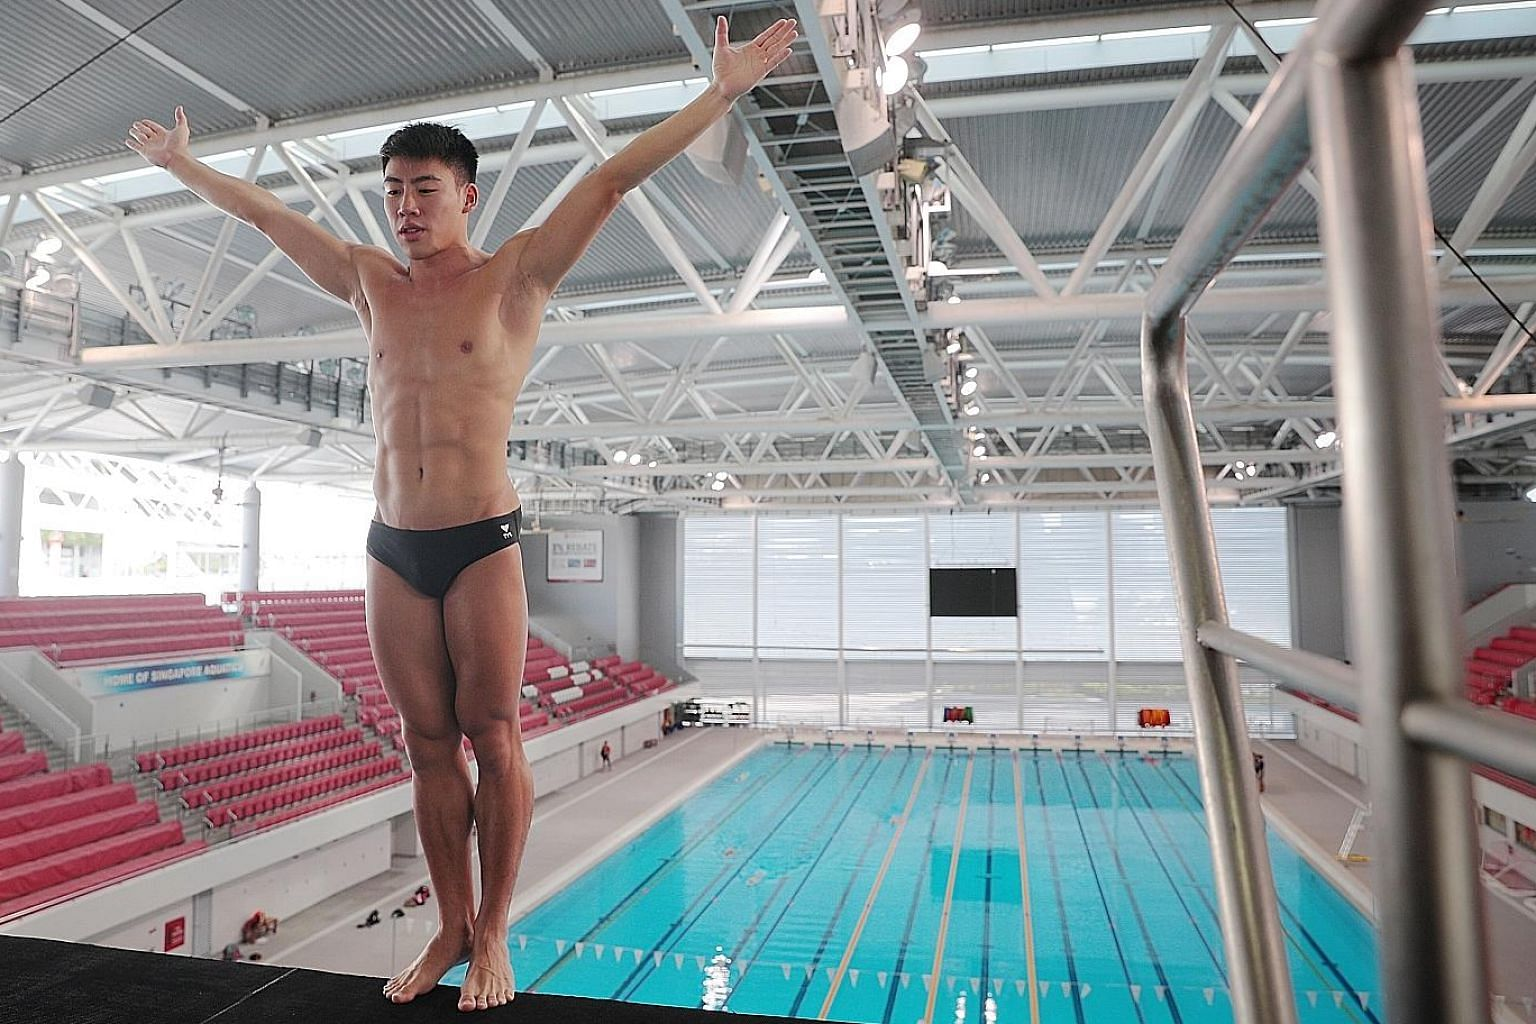 Jonathan Chan has been relishing his return to training for next year's Tokyo Summer Games. Chan, the first Singaporean diver to qualify for the Olympics, admitted to being rusty but is grateful to be back in the pool as Singapore exited the circuit